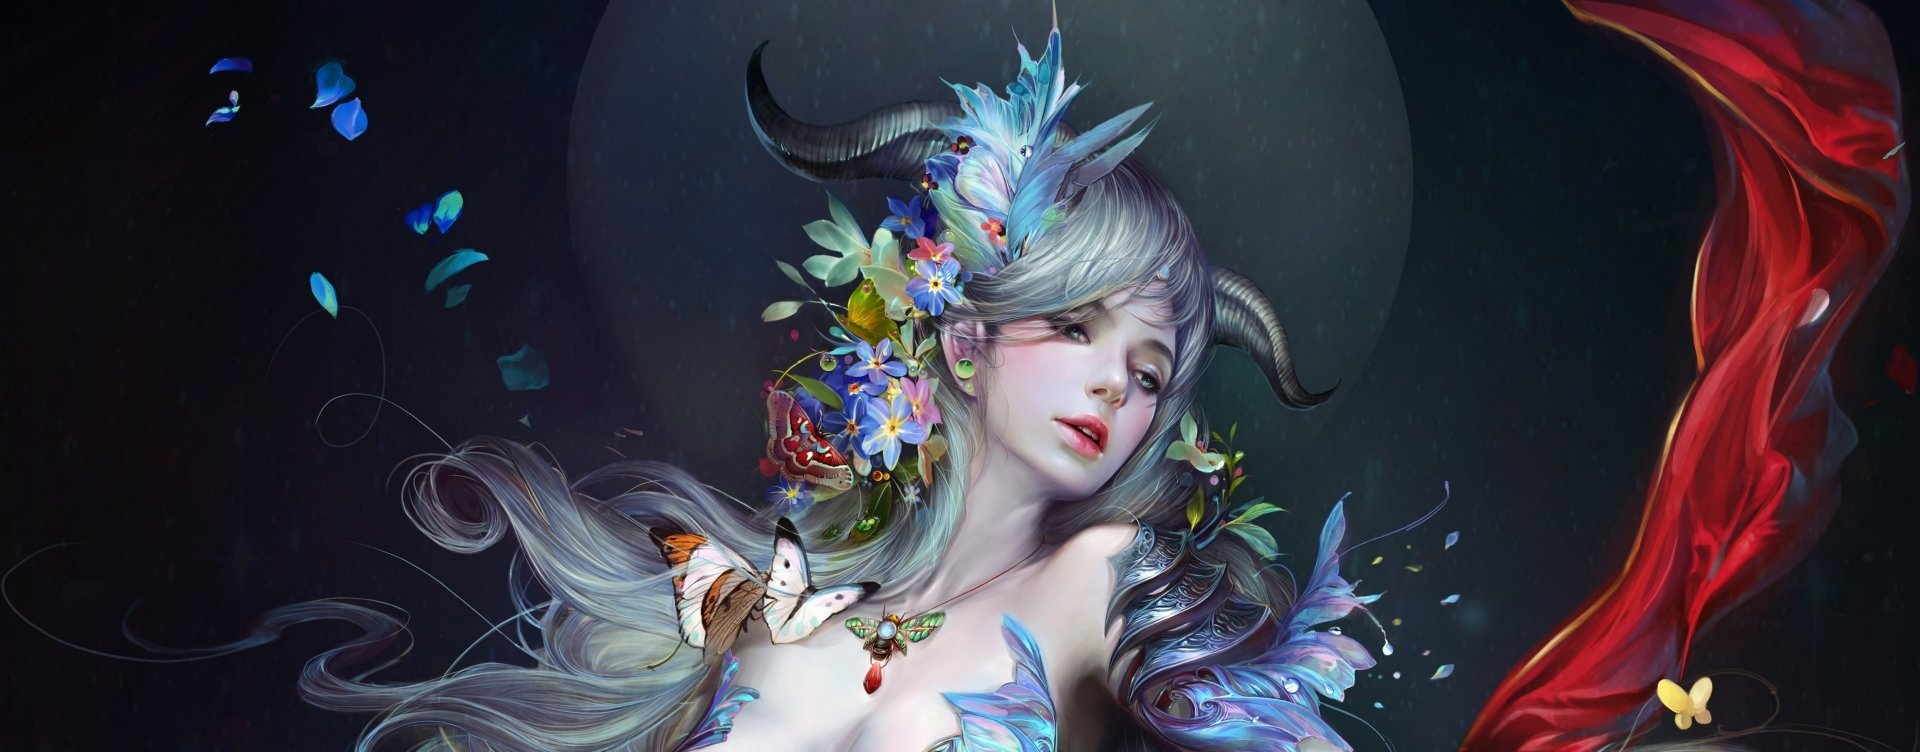 Wallpapers ID:1136547